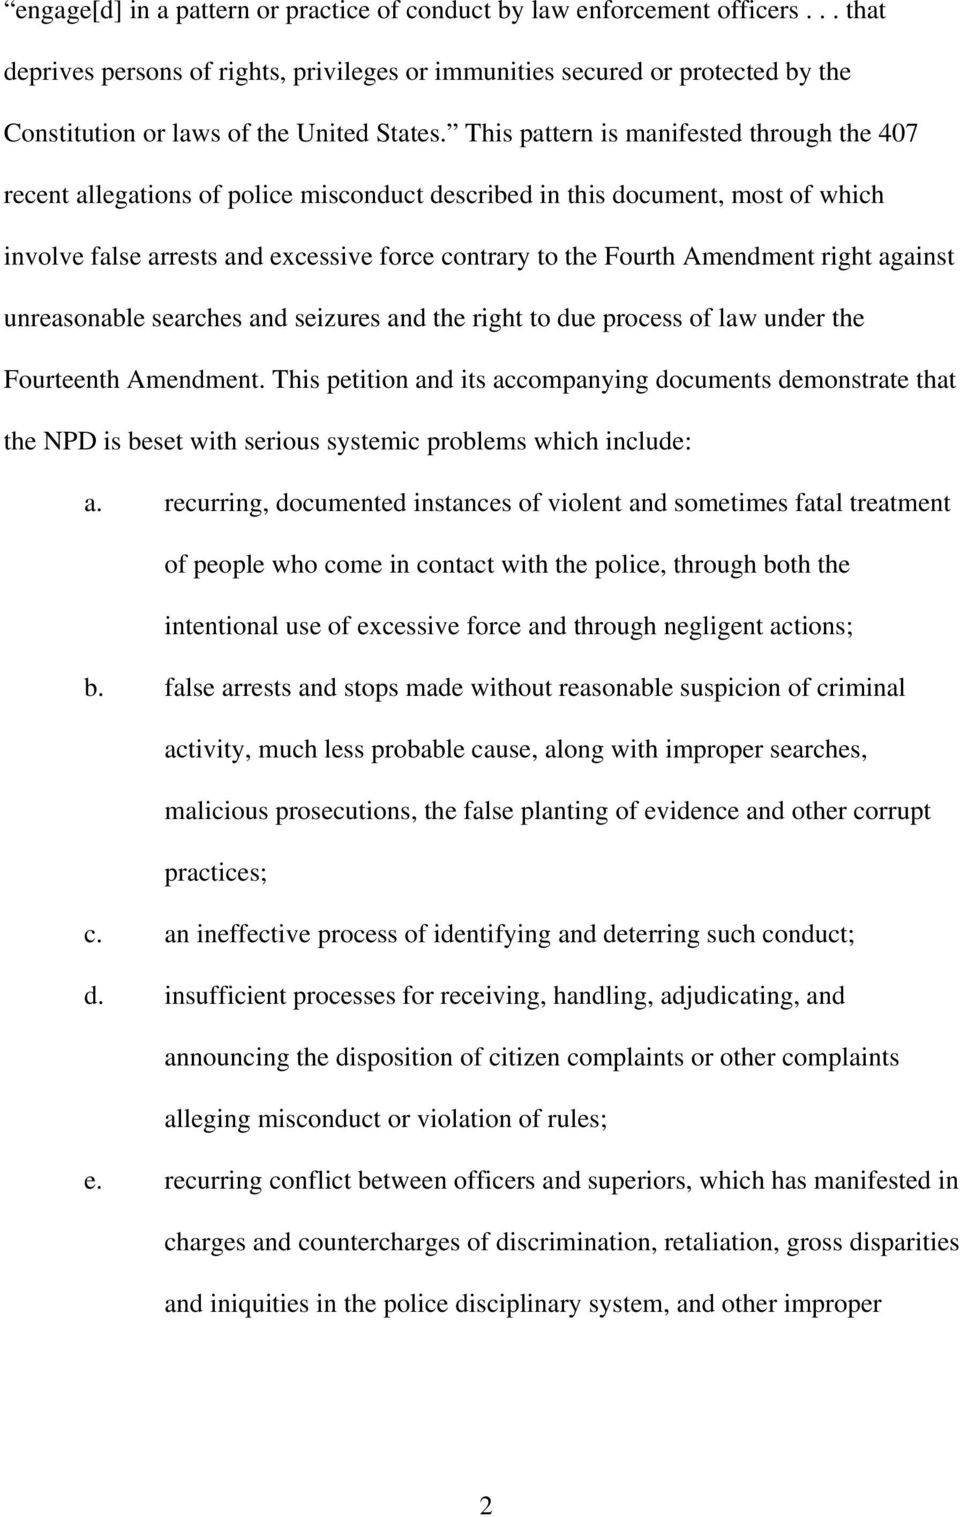 This pattern is manifested through the 407 recent allegations of police misconduct described in this document, most of which involve false arrests and excessive force contrary to the Fourth Amendment